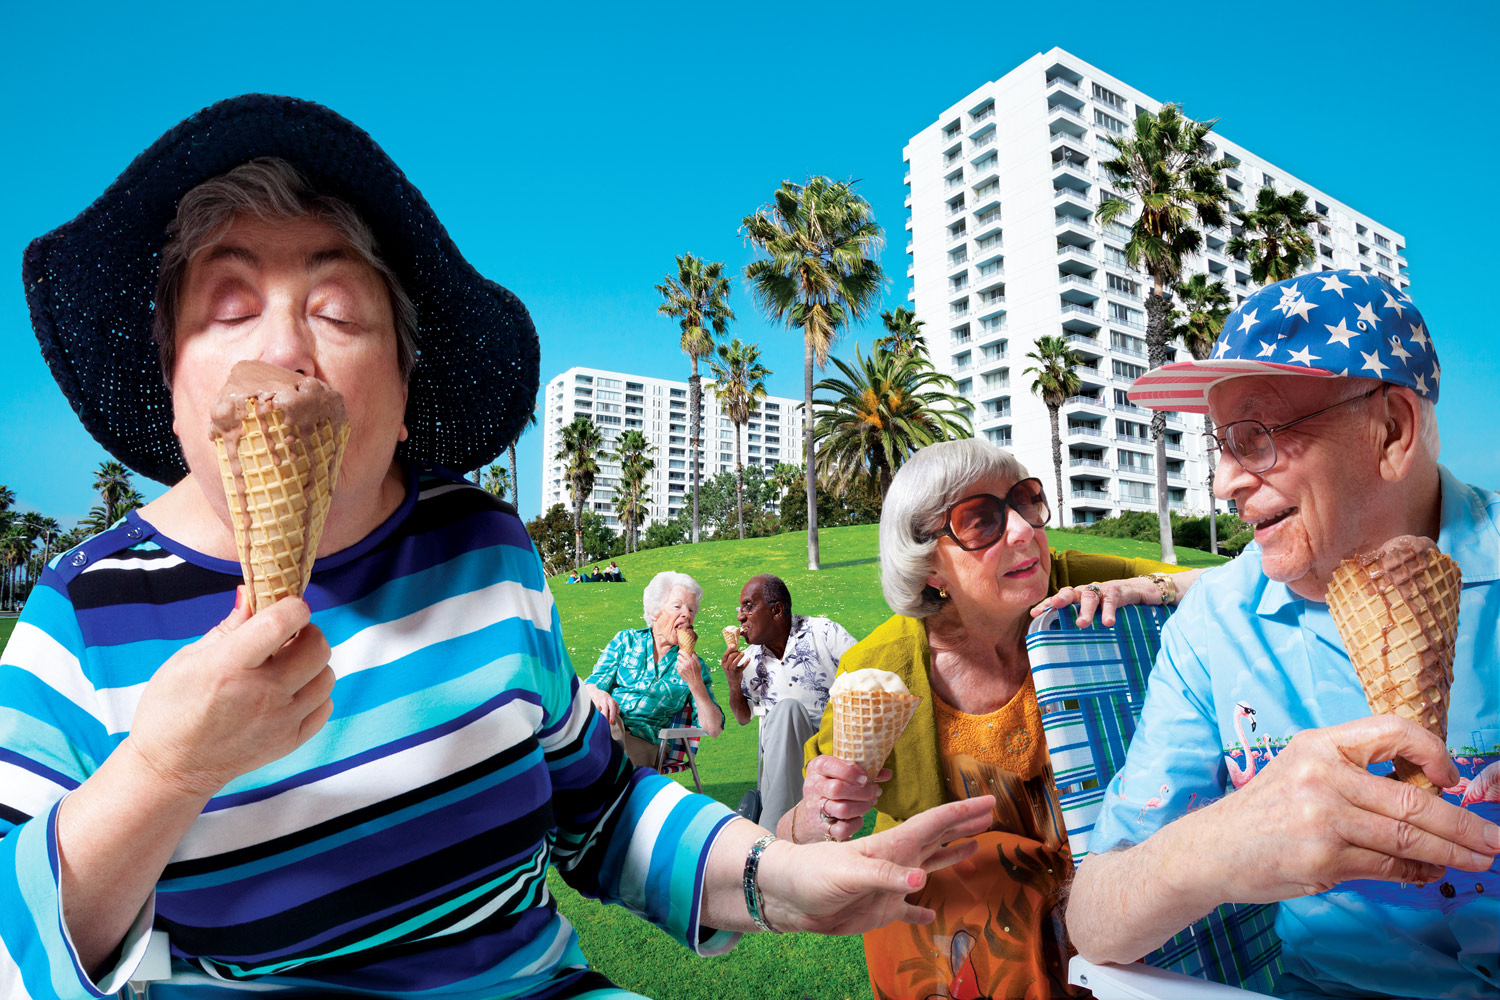 mitch_tobias_ice_cream_seniors_composite_stv_rgb_opt